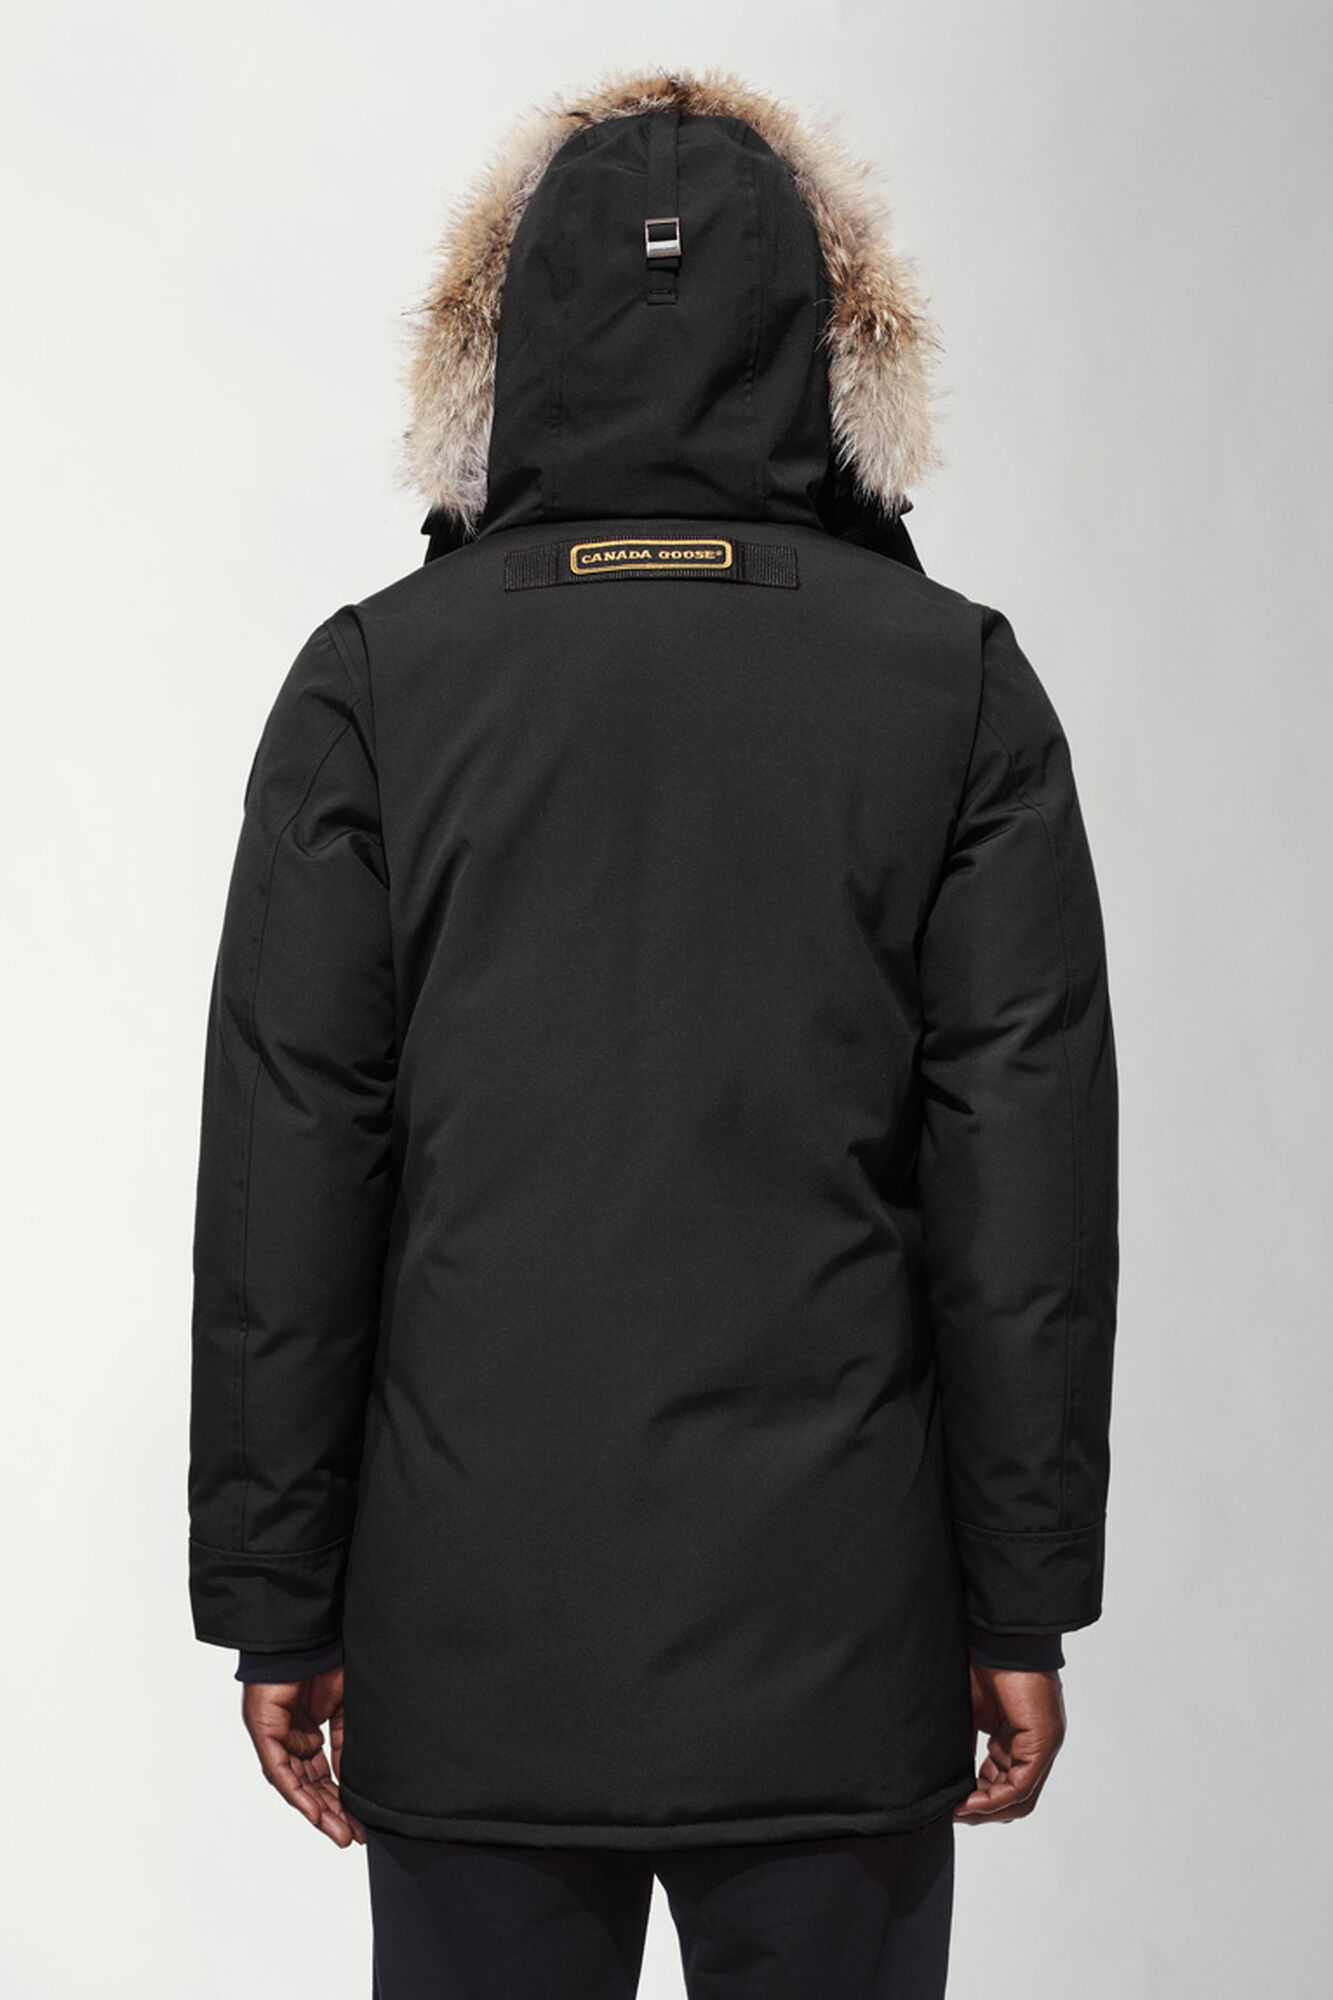 langford parka canada goose canada goose. Black Bedroom Furniture Sets. Home Design Ideas